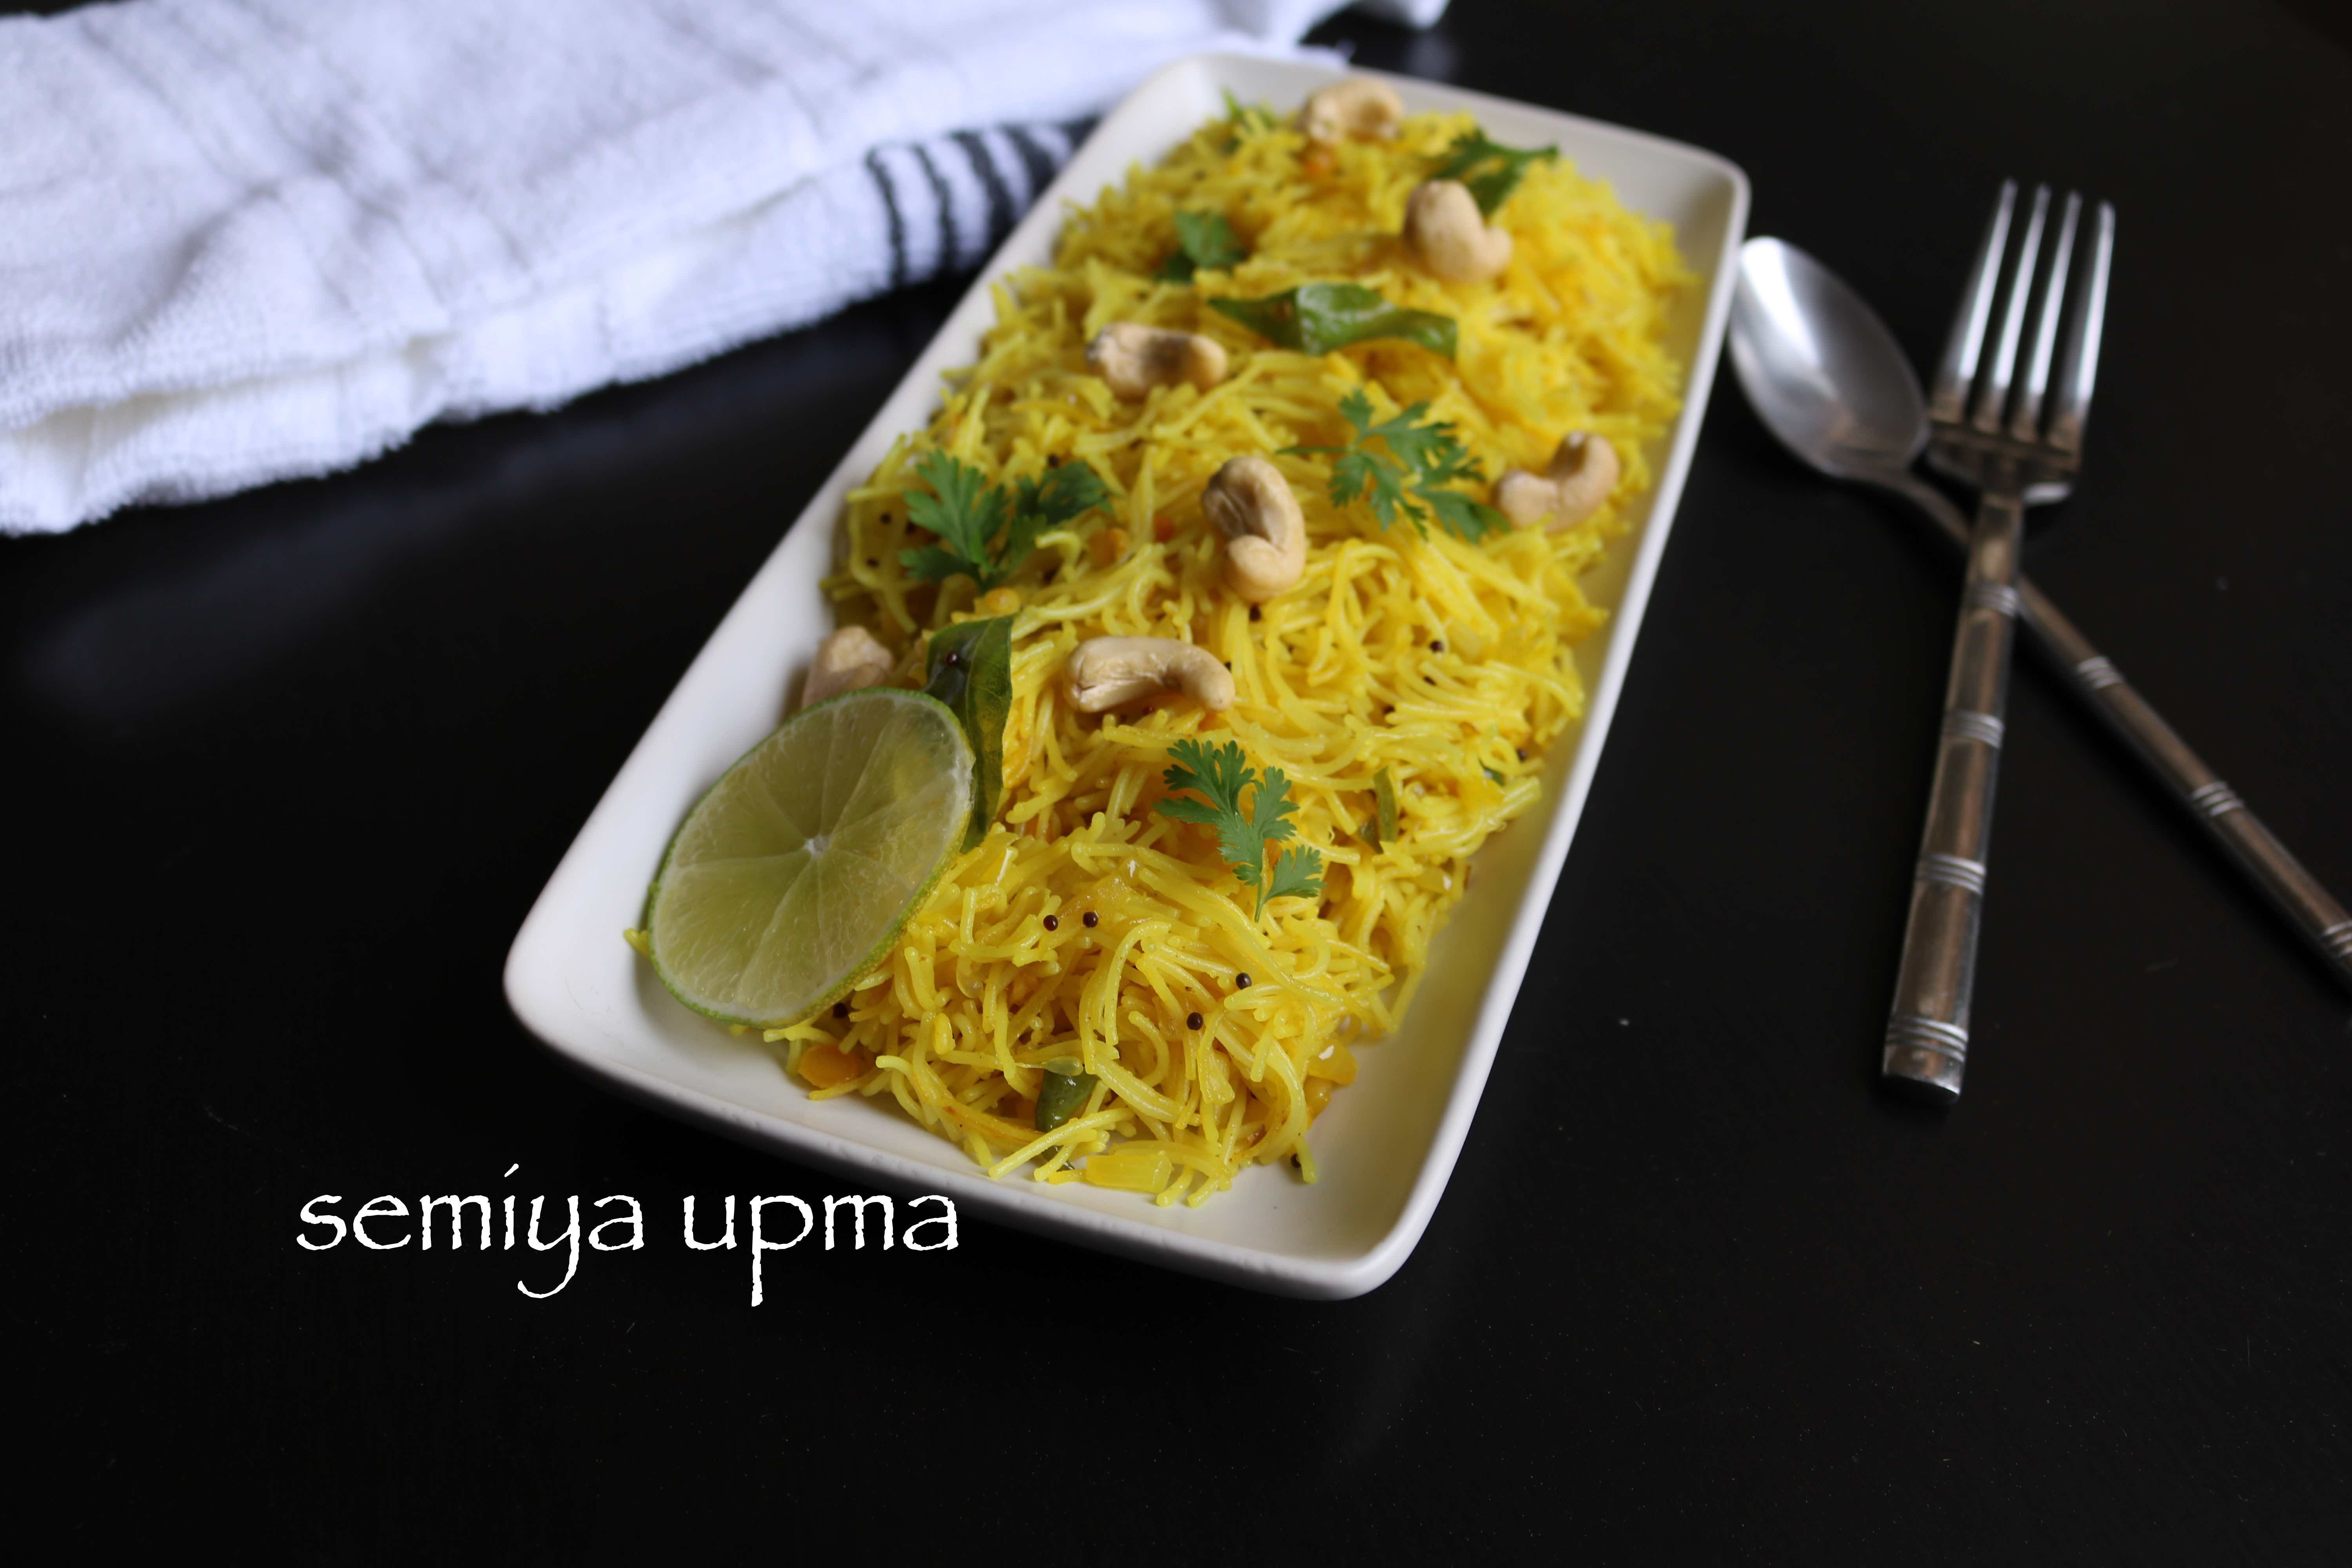 sevai uppitu / vermicelli upma / seviyan upma / semiya upmais one of the regular breakfast that is made in most south indian homes. it is healthy, instant